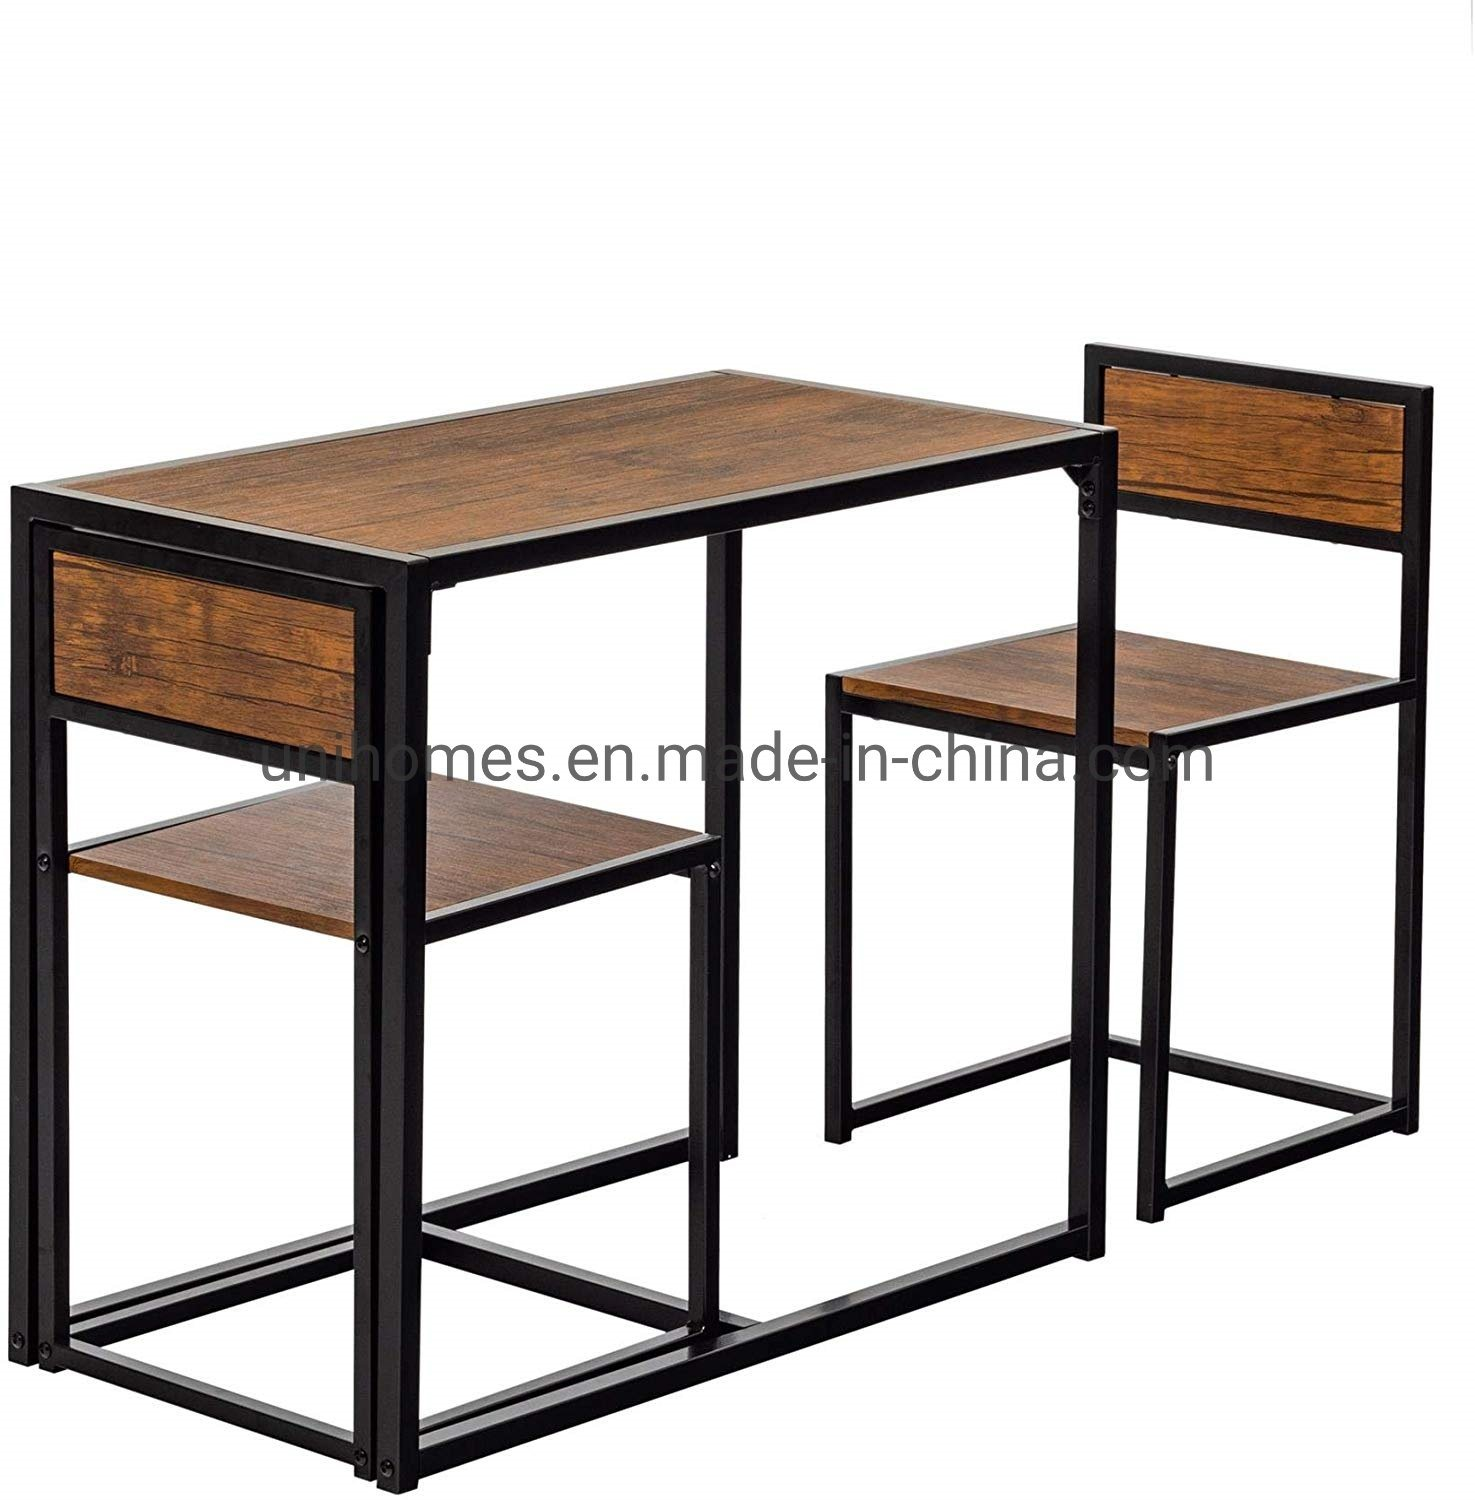 China 2 Person Space Saving Compact Kitchen Dining Table Chairs Set For Small Spaces Dinner Table China Dining Table Dining Table Set